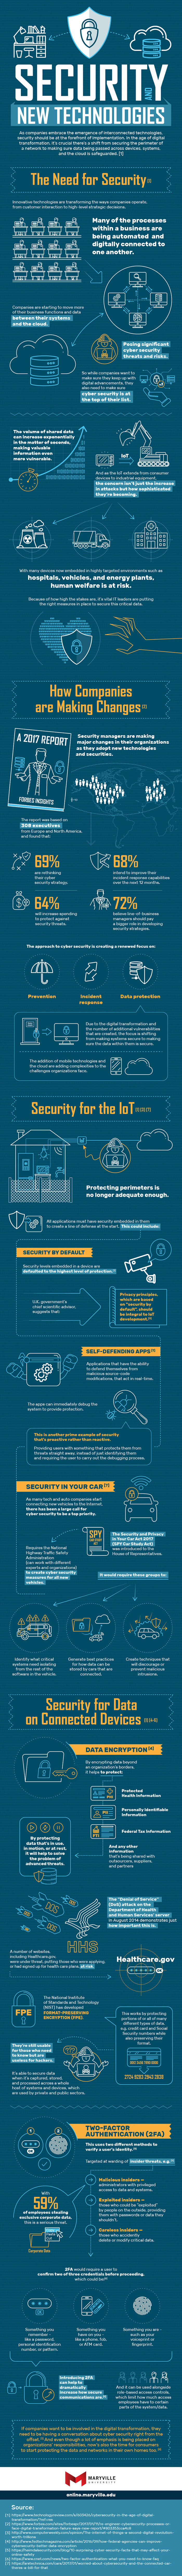 An infographic about cyber security by Maryville University